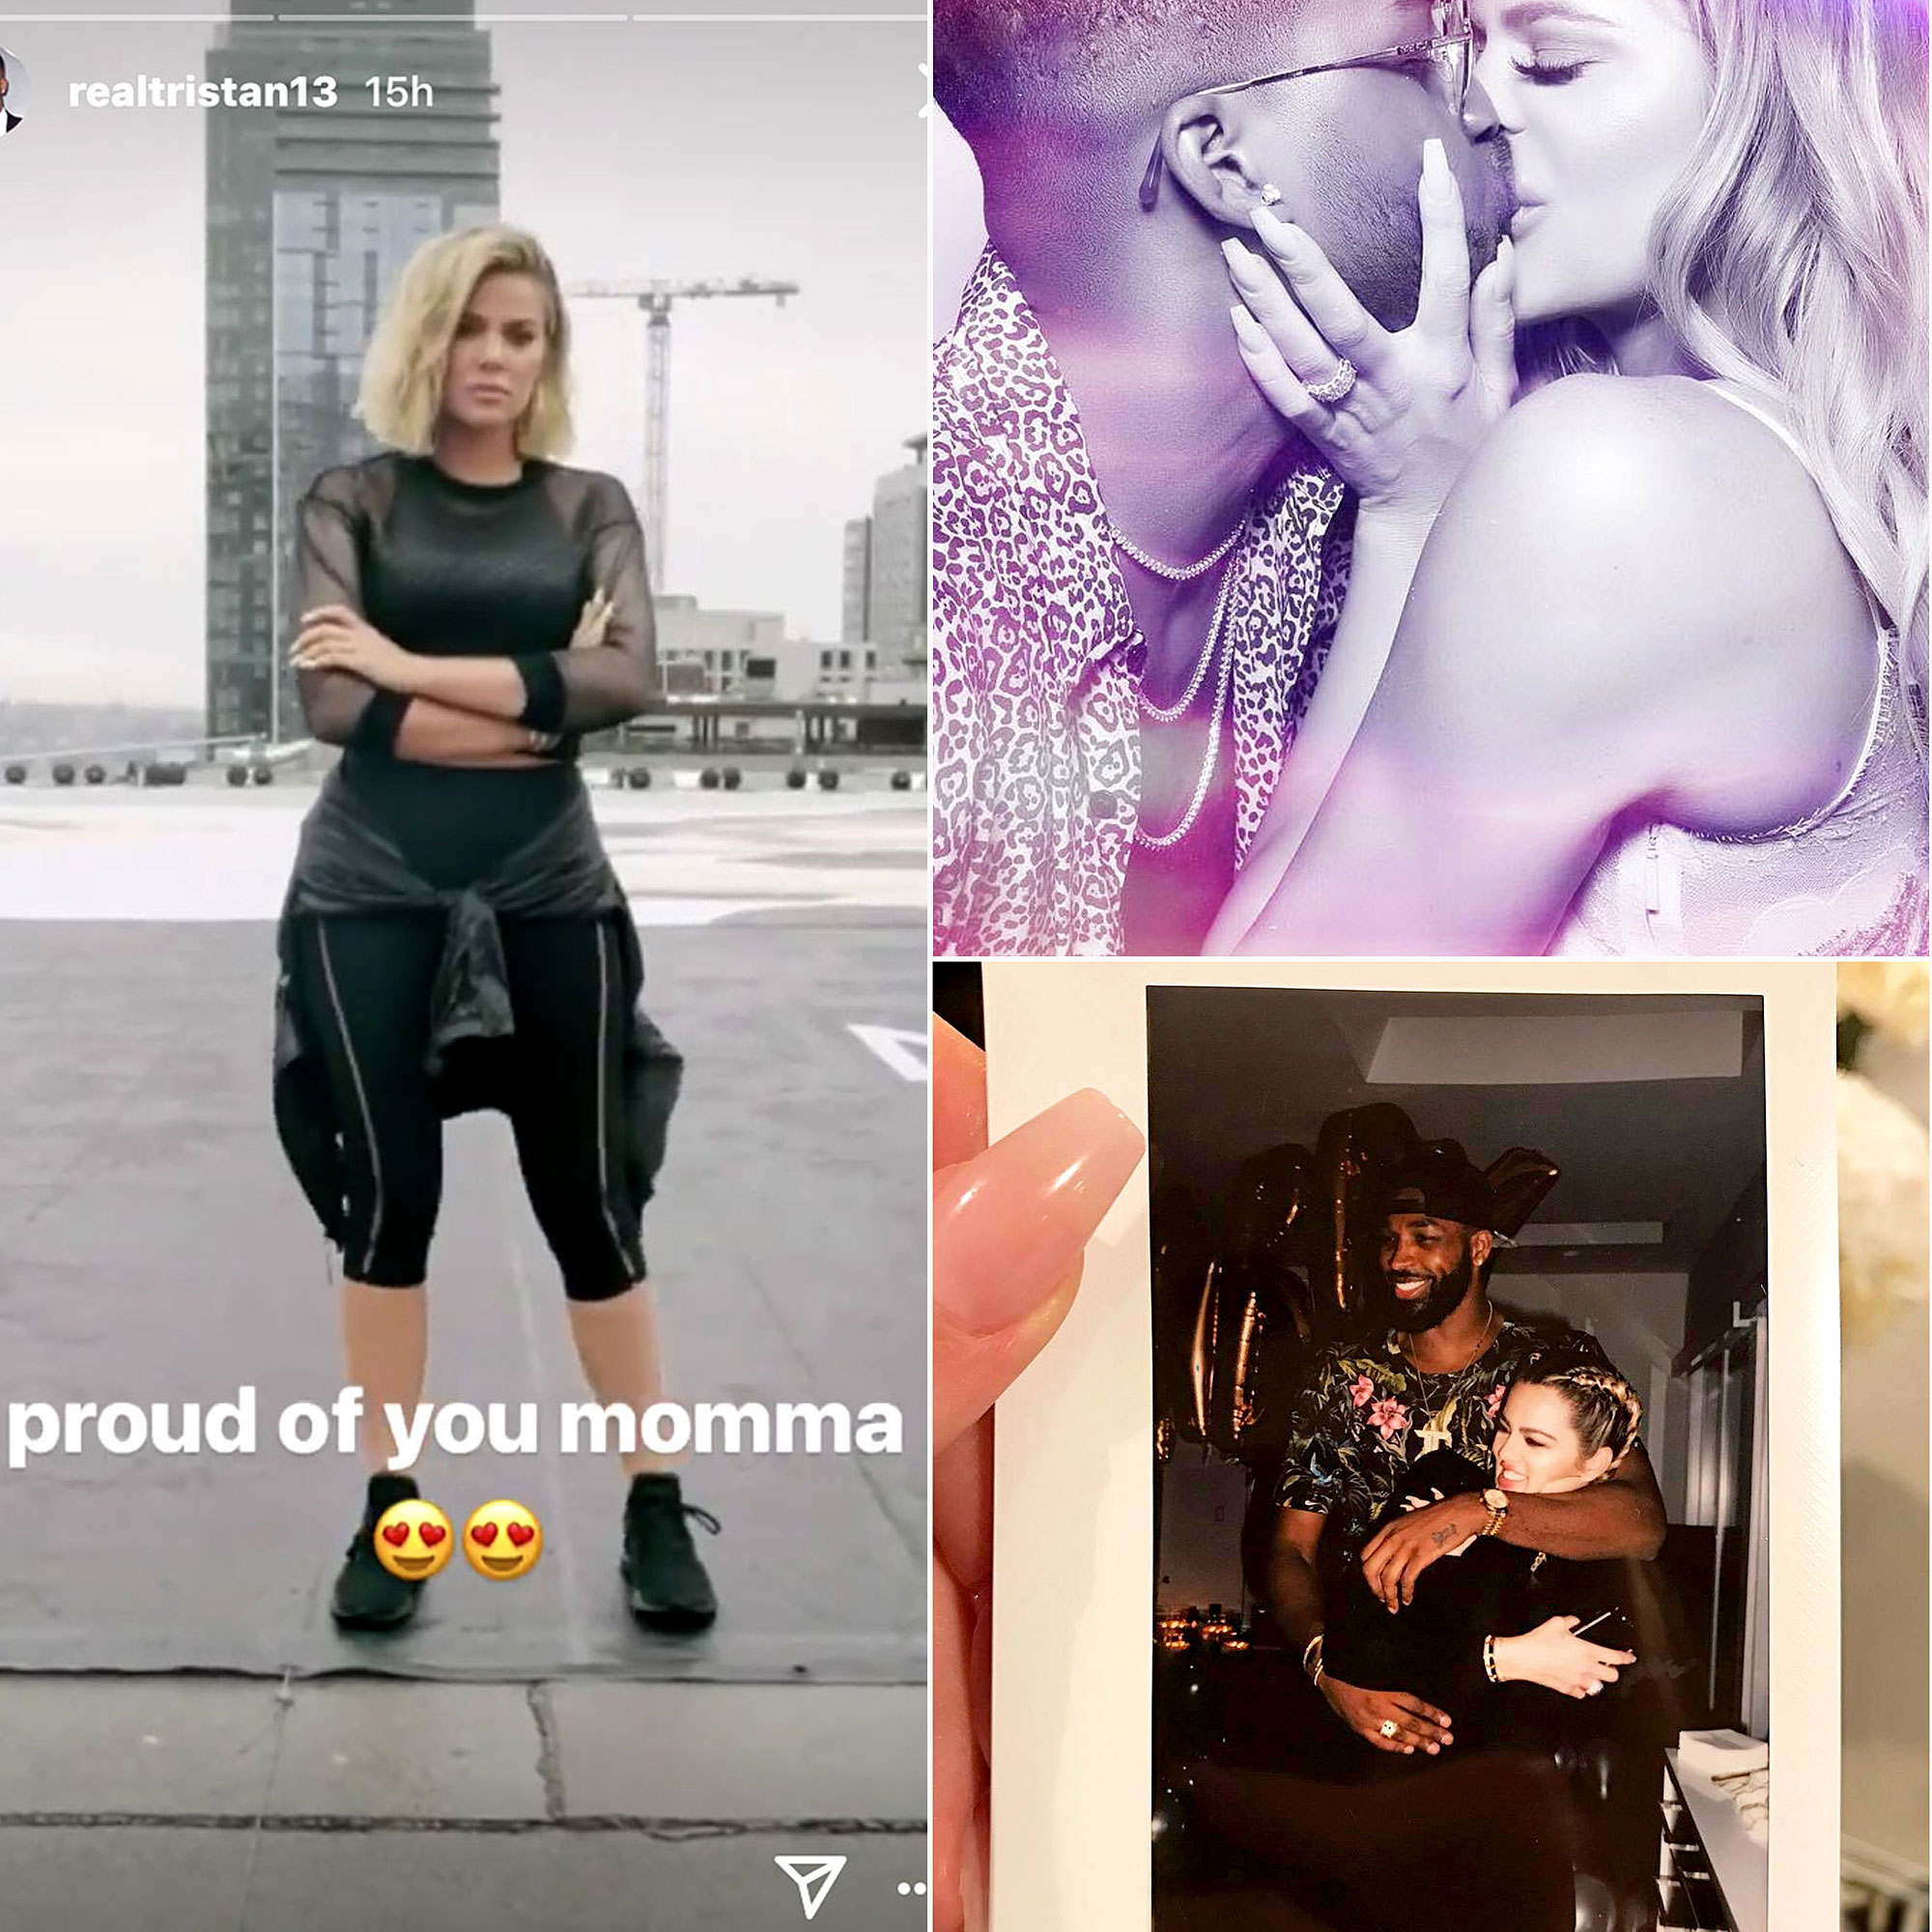 """Tristan Khloe Flirt Social Media - Ever since his affairs with multiple women made headlines in April 2018, Tristan Thompson has been making his affection for girlfriend Khloé Kardashian a matter of public record. [ami-related id=""""728487"""" url=""""https://www.usmagazine.com/celebrity-news/news/khloe-kardashian-and-tristan-thompsons-relationship-timeline-w505561/"""" title=""""Khloe Kardashian and Tristan Thompson: A Timeline of Their Relationship"""" target="""""""" inset=""""true""""] In fact, the athlete has posted a series of flirty Instagram comments directed at Kardashian, with whom he shares daughter True ."""